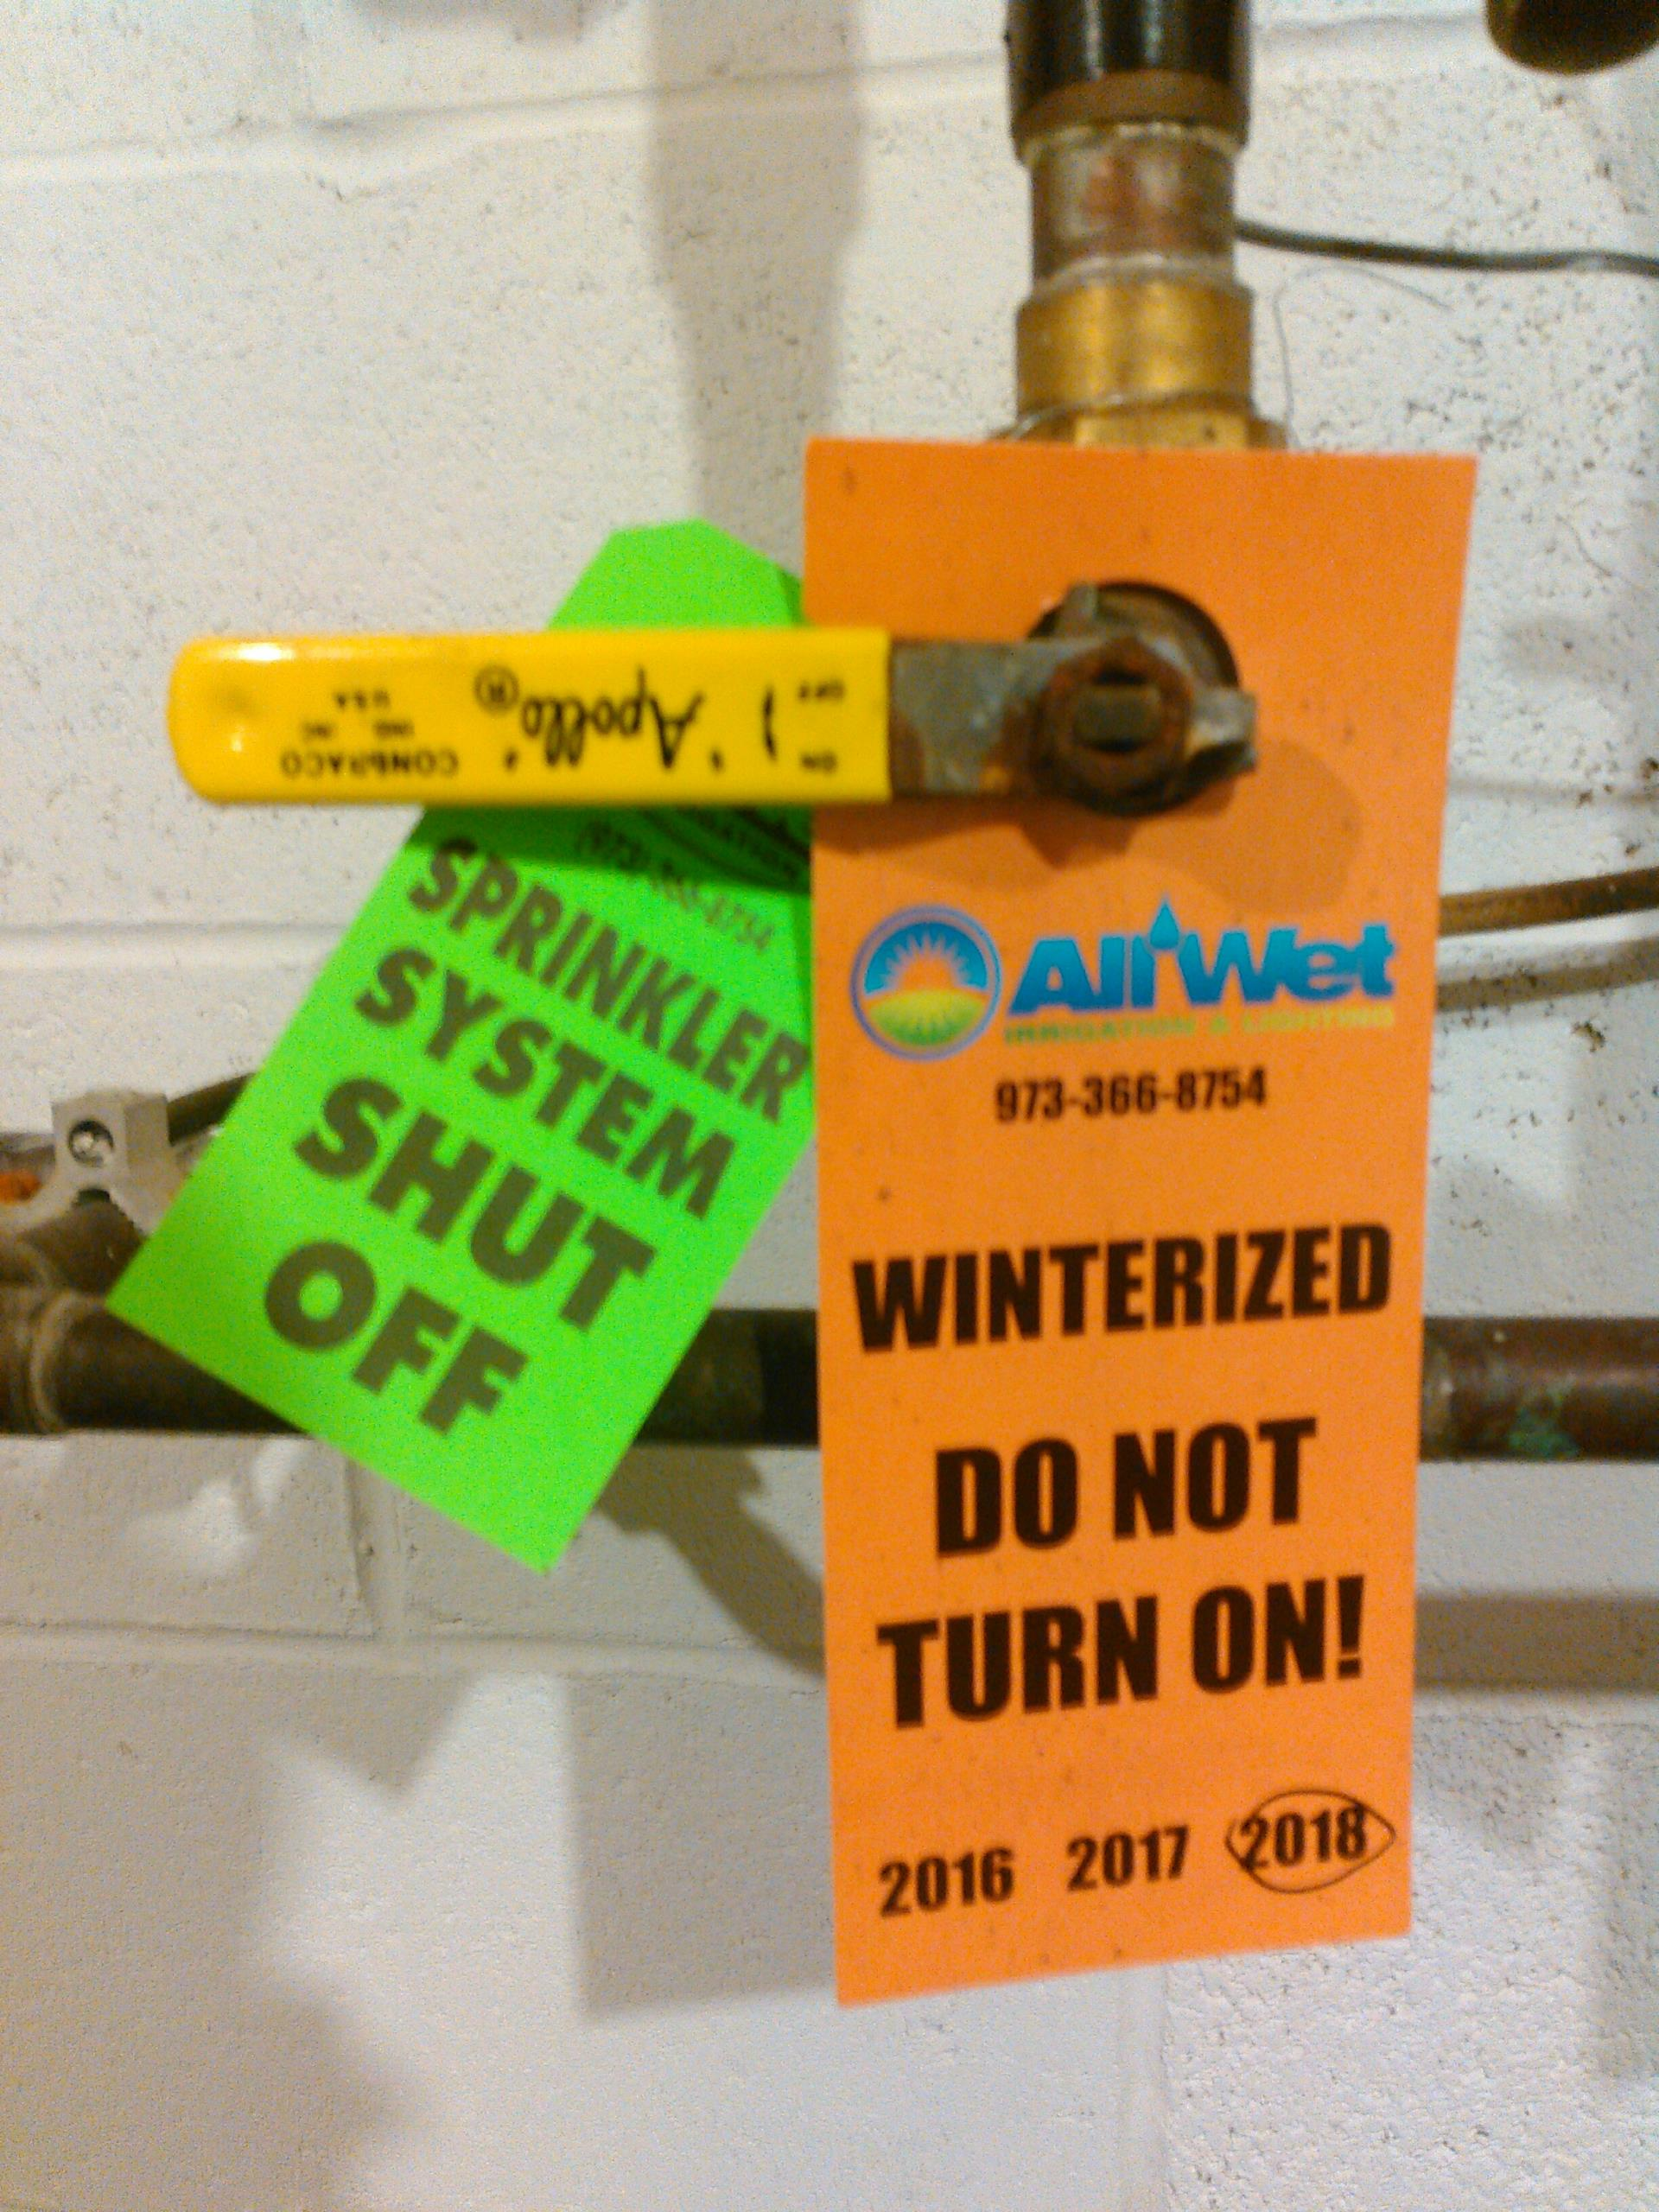 Vernon Township, NJ - Blow out water from irrigation system to avoid freezing damage on sprinkler heads, pipes & backflow device